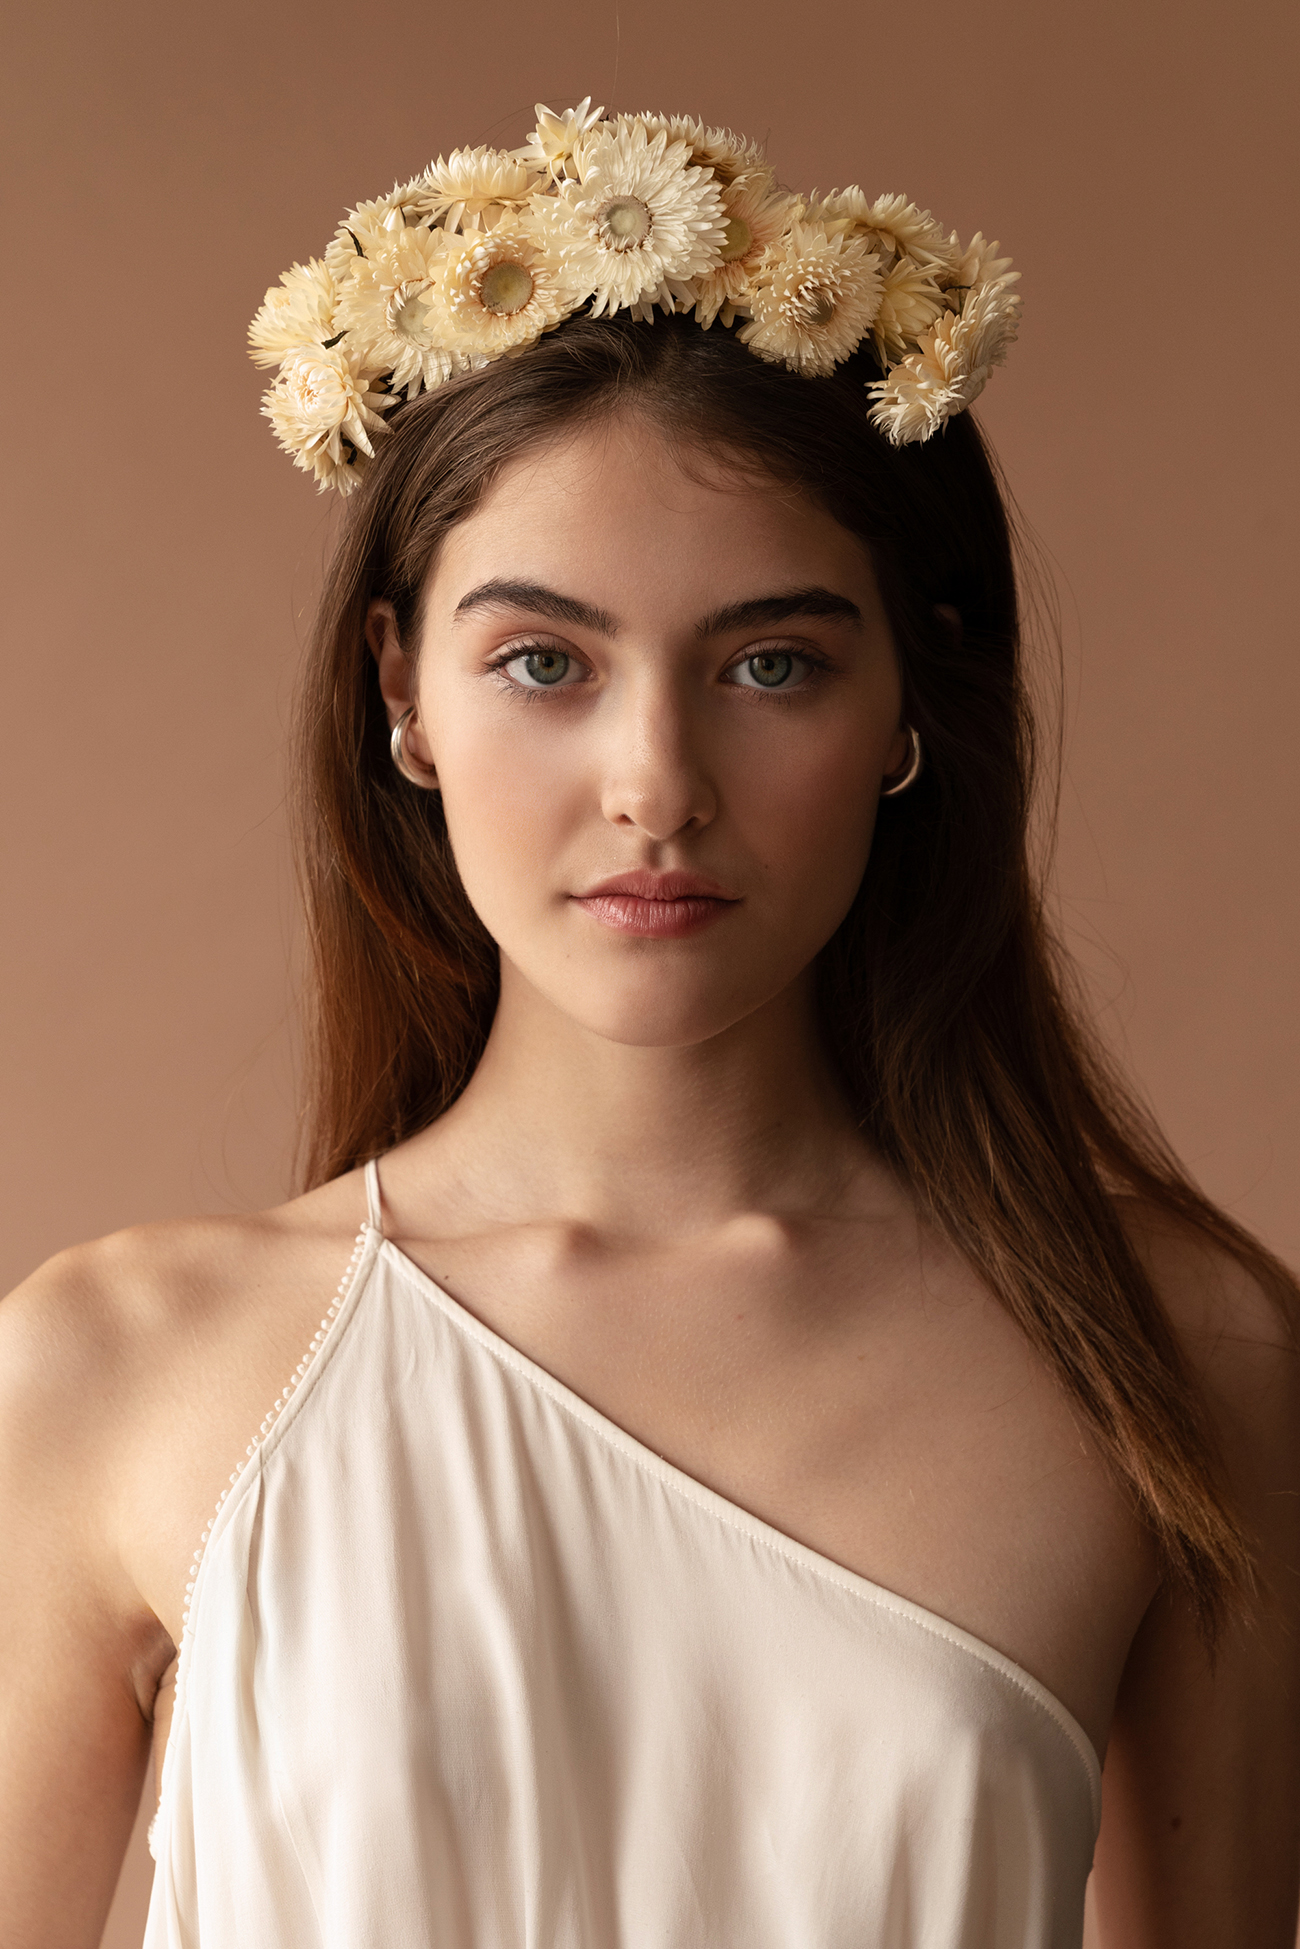 Wearable Dried Floral Crown